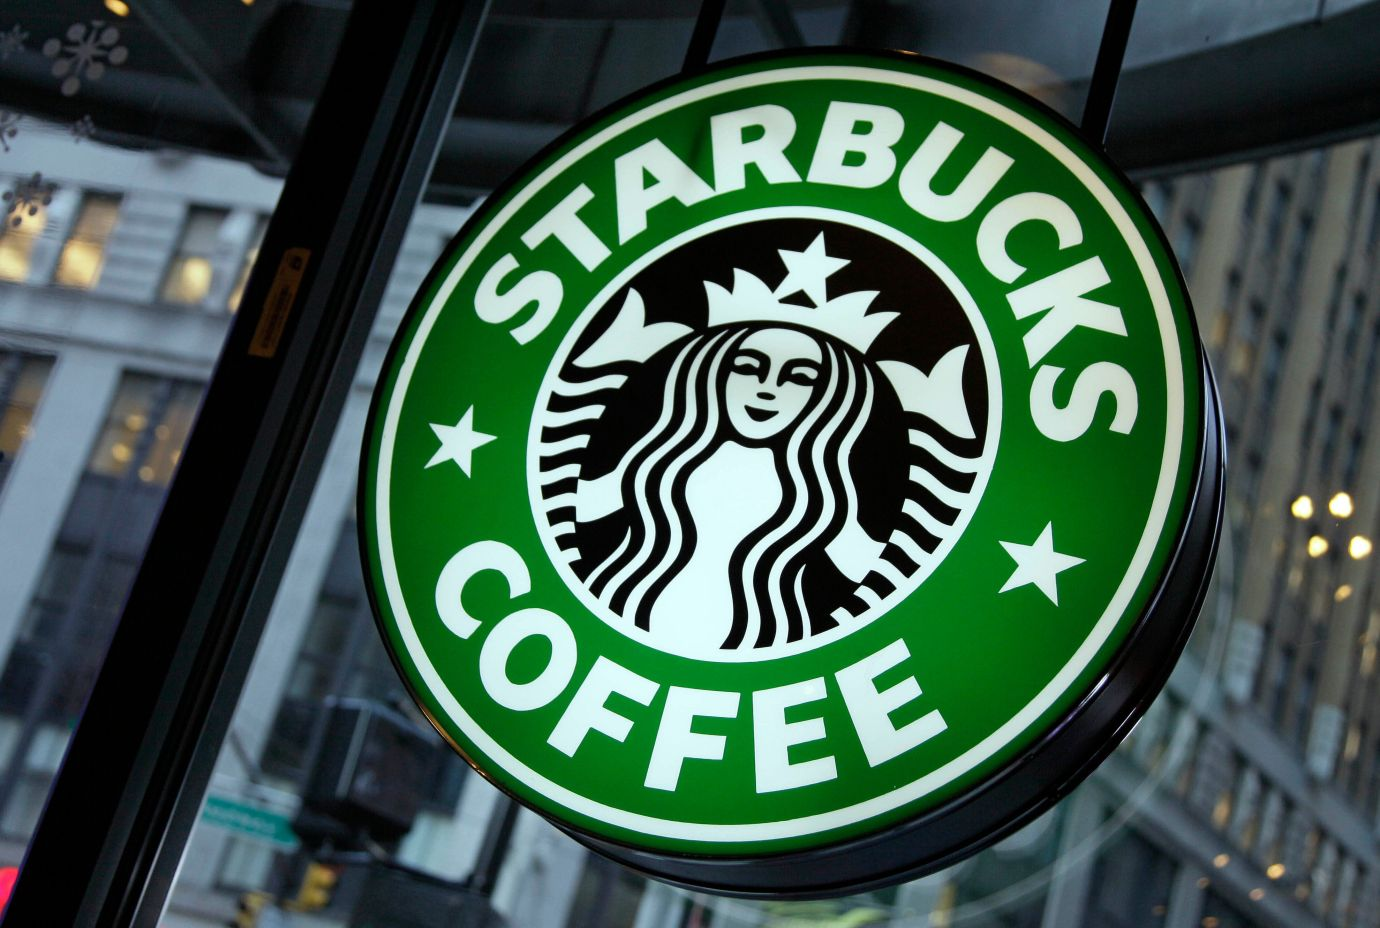 In this 2010 file photo, a Starbucks sign is seen in New York City. The company says customers in Canada will soon be able to down fake meat with their Frappuccinos.